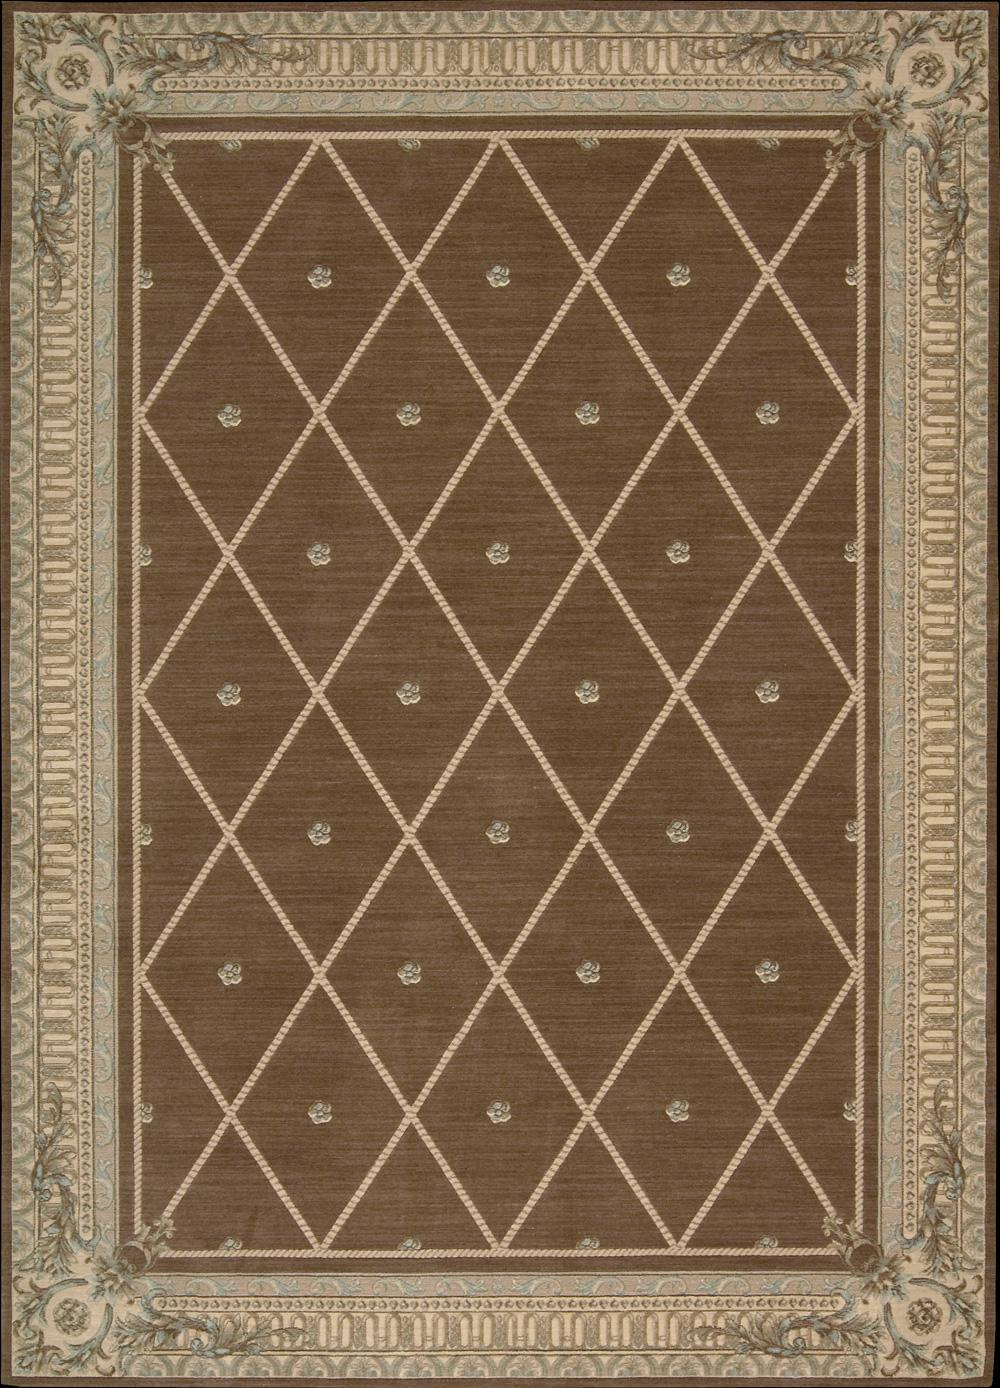 "Nourison Ashton House Area Rug 5'6"" x 7'5"" - Item Number: 1223"